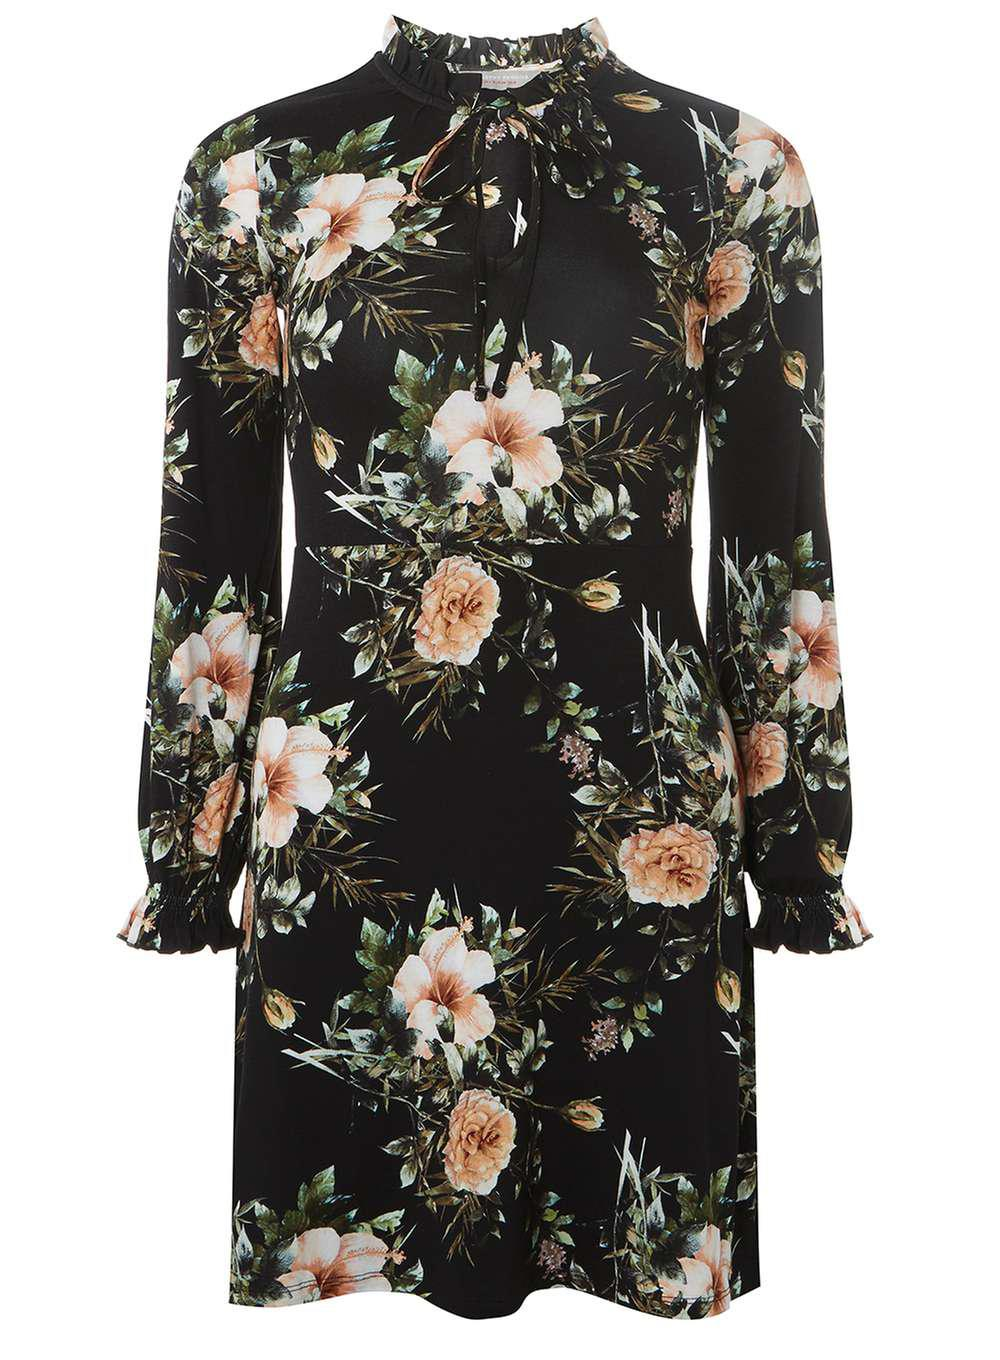 Dorothy Perkins Womens Petite BlackFloral Print Fit and Flare Dress- Buy Cheap Many Kinds Of Discount Largest Supplier Cheap Sale Discount Best Prices Big Sale Cheap Price OKo5UbYsz